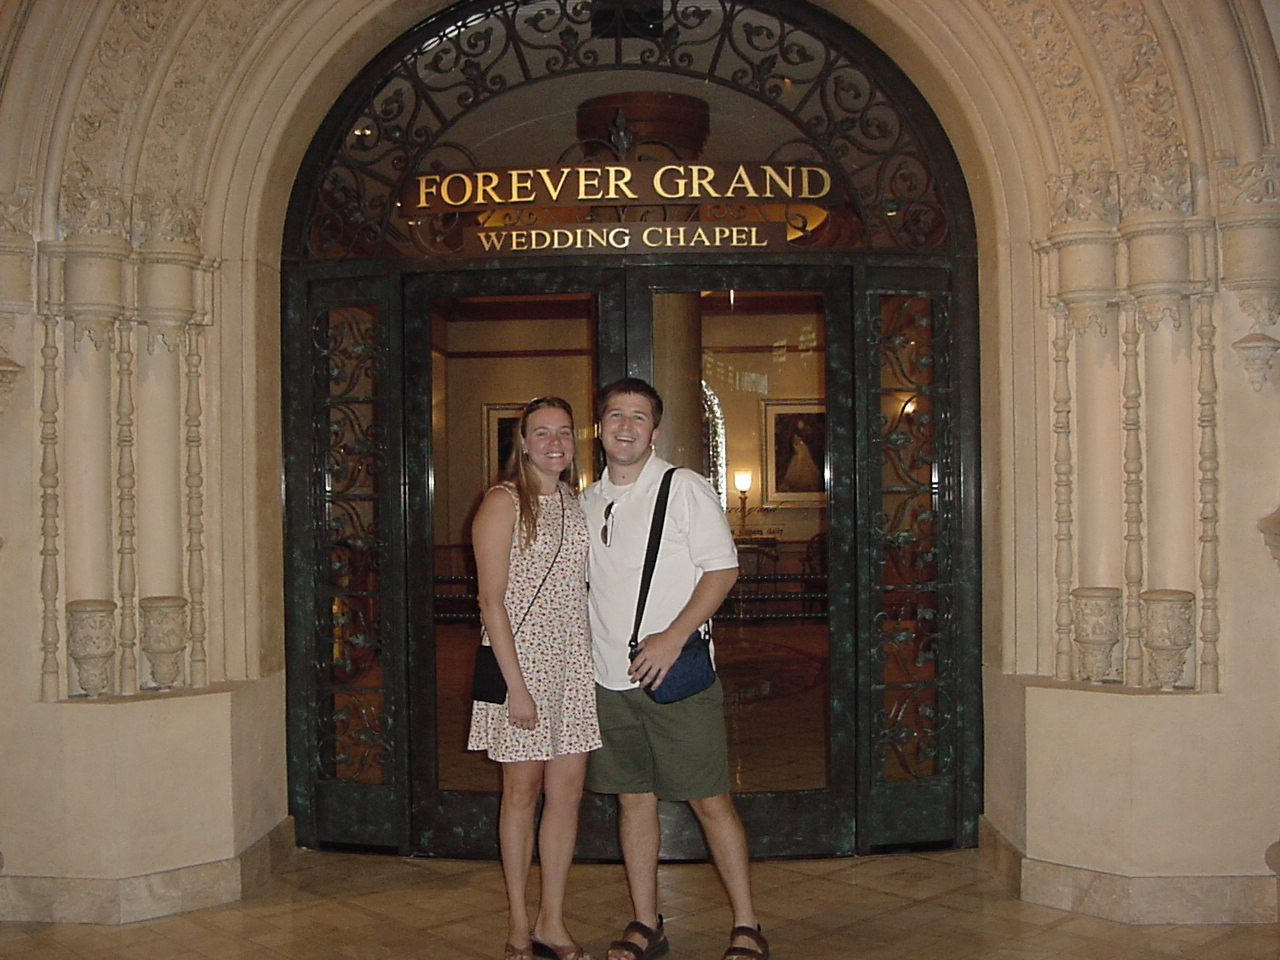 Carrie and Jonathan at the MGM Wedding Chapel in 2003